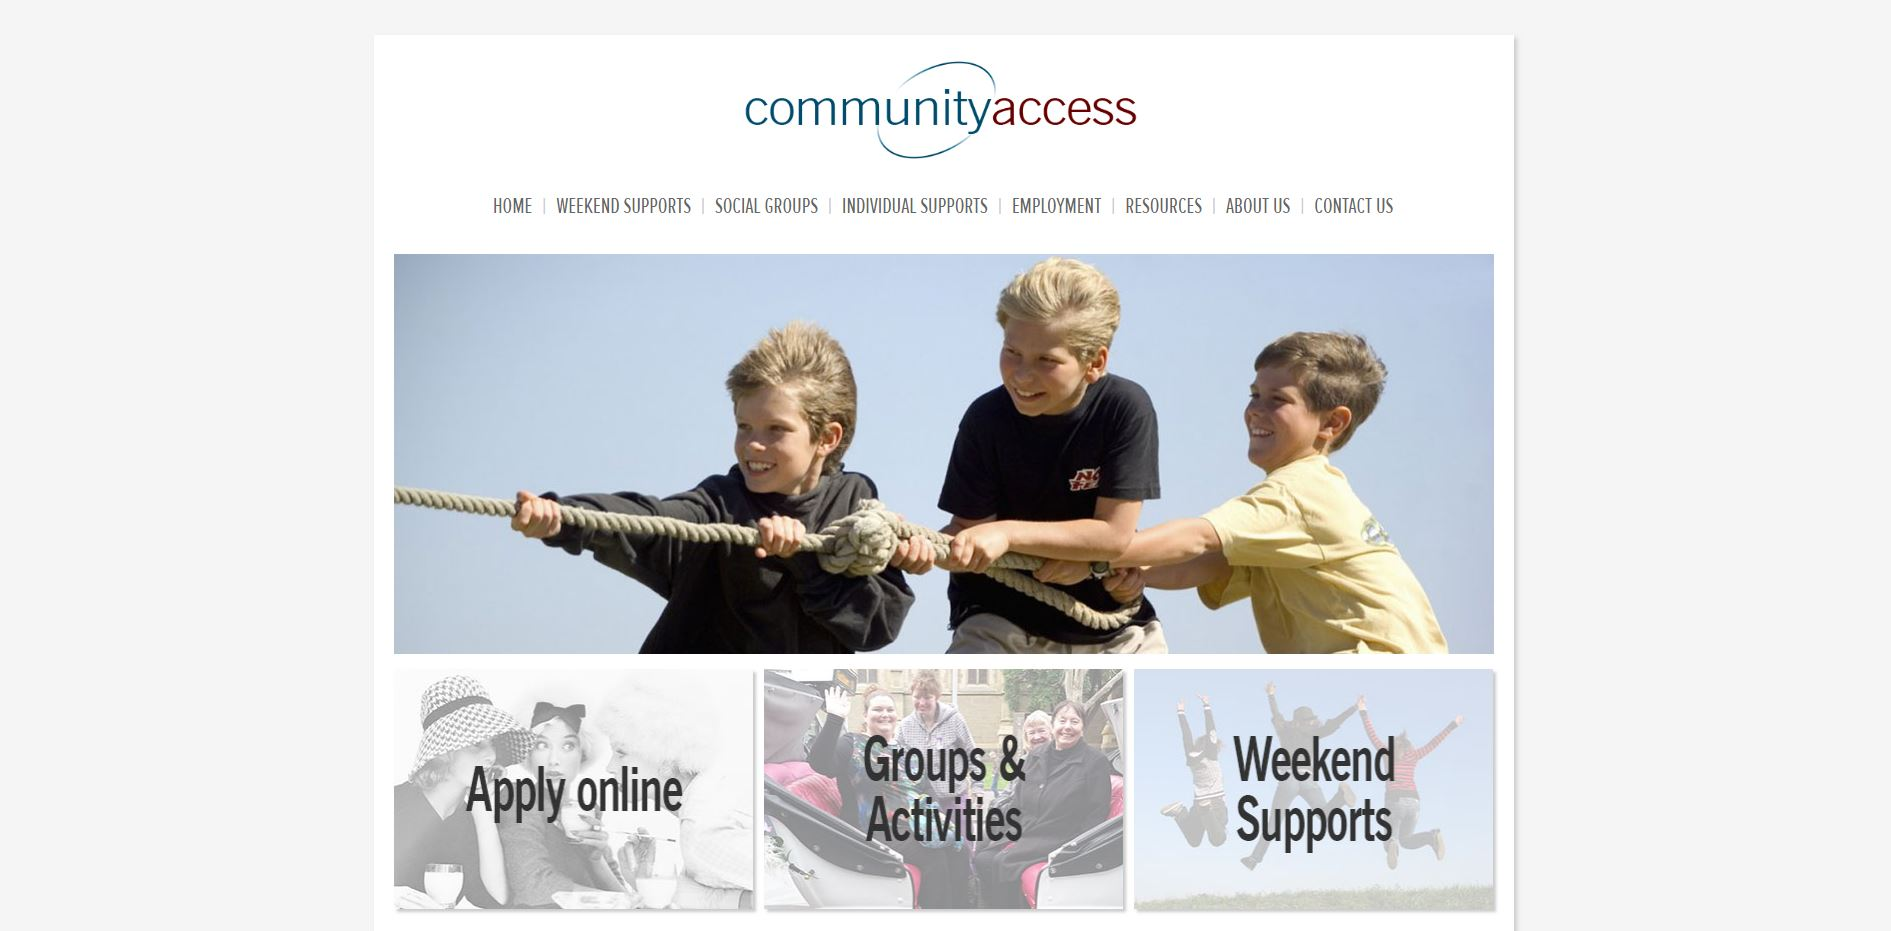 communityaccess.net.au